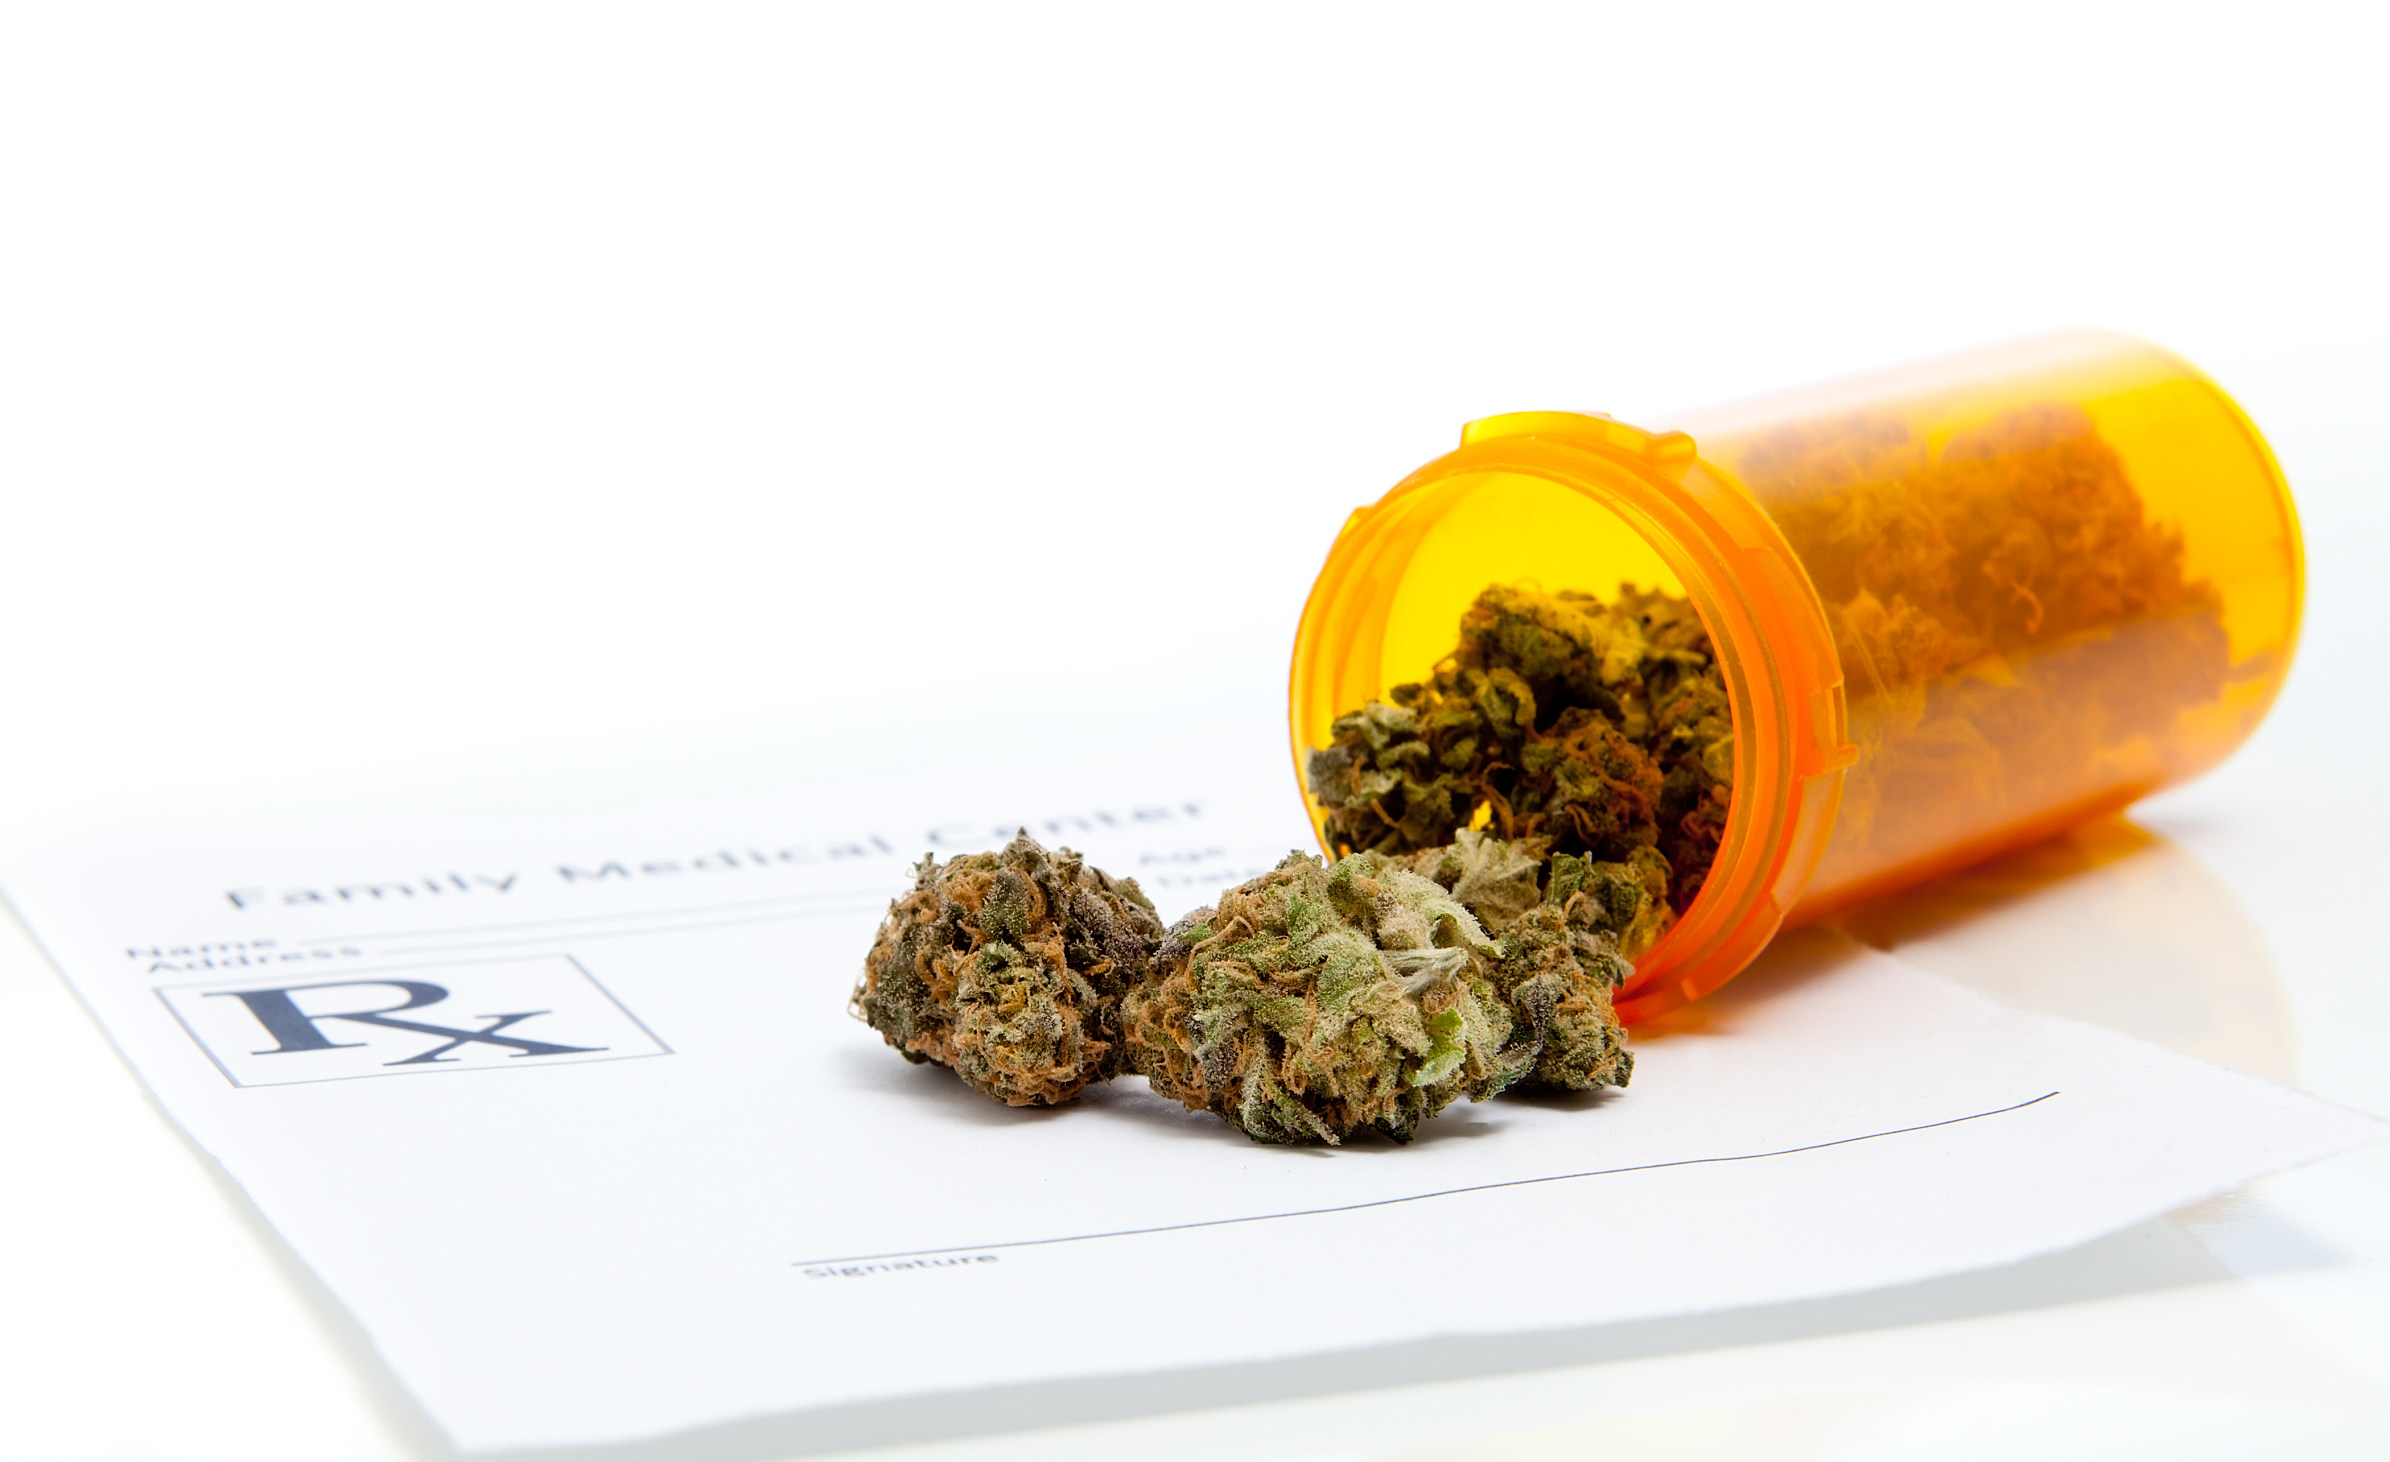 Assembly Committee Approves PTSD For NY Medical Marijuana Program